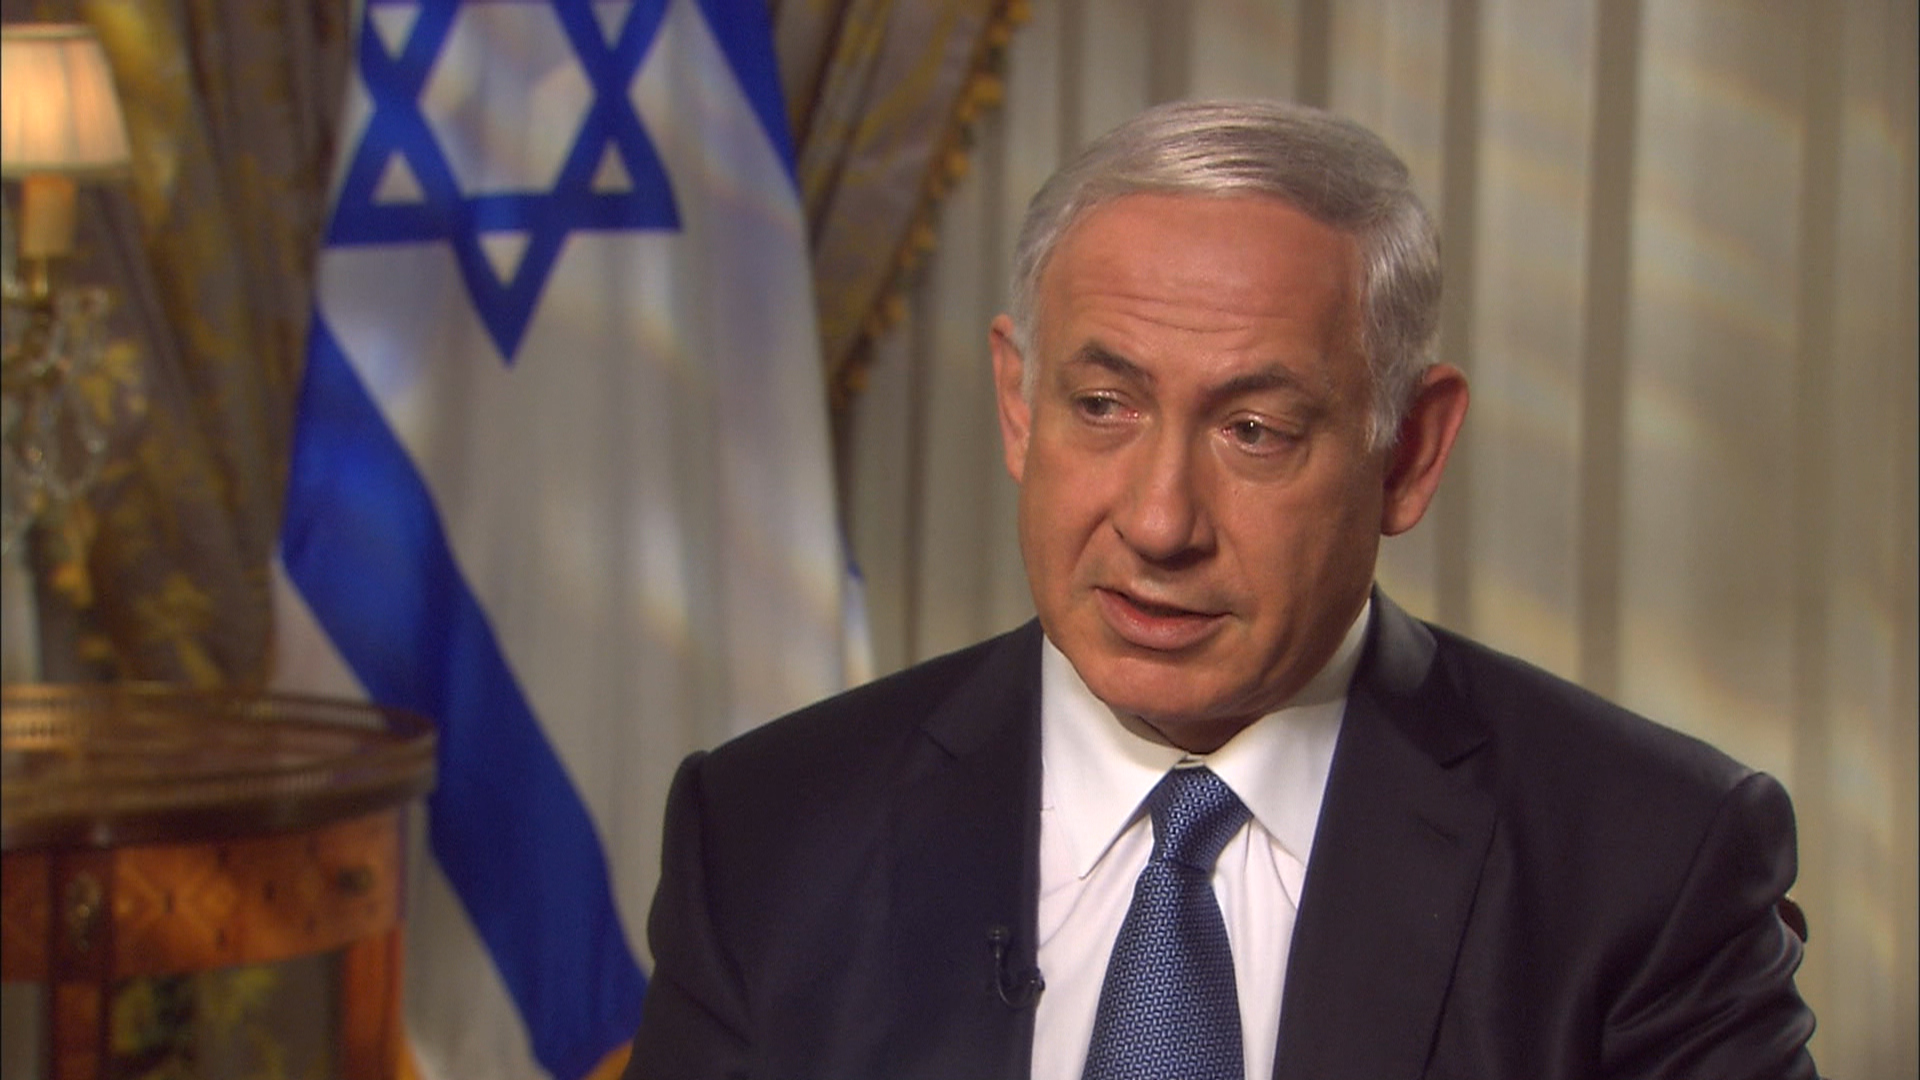 Netanyahu to WH: 'Get the facts right'